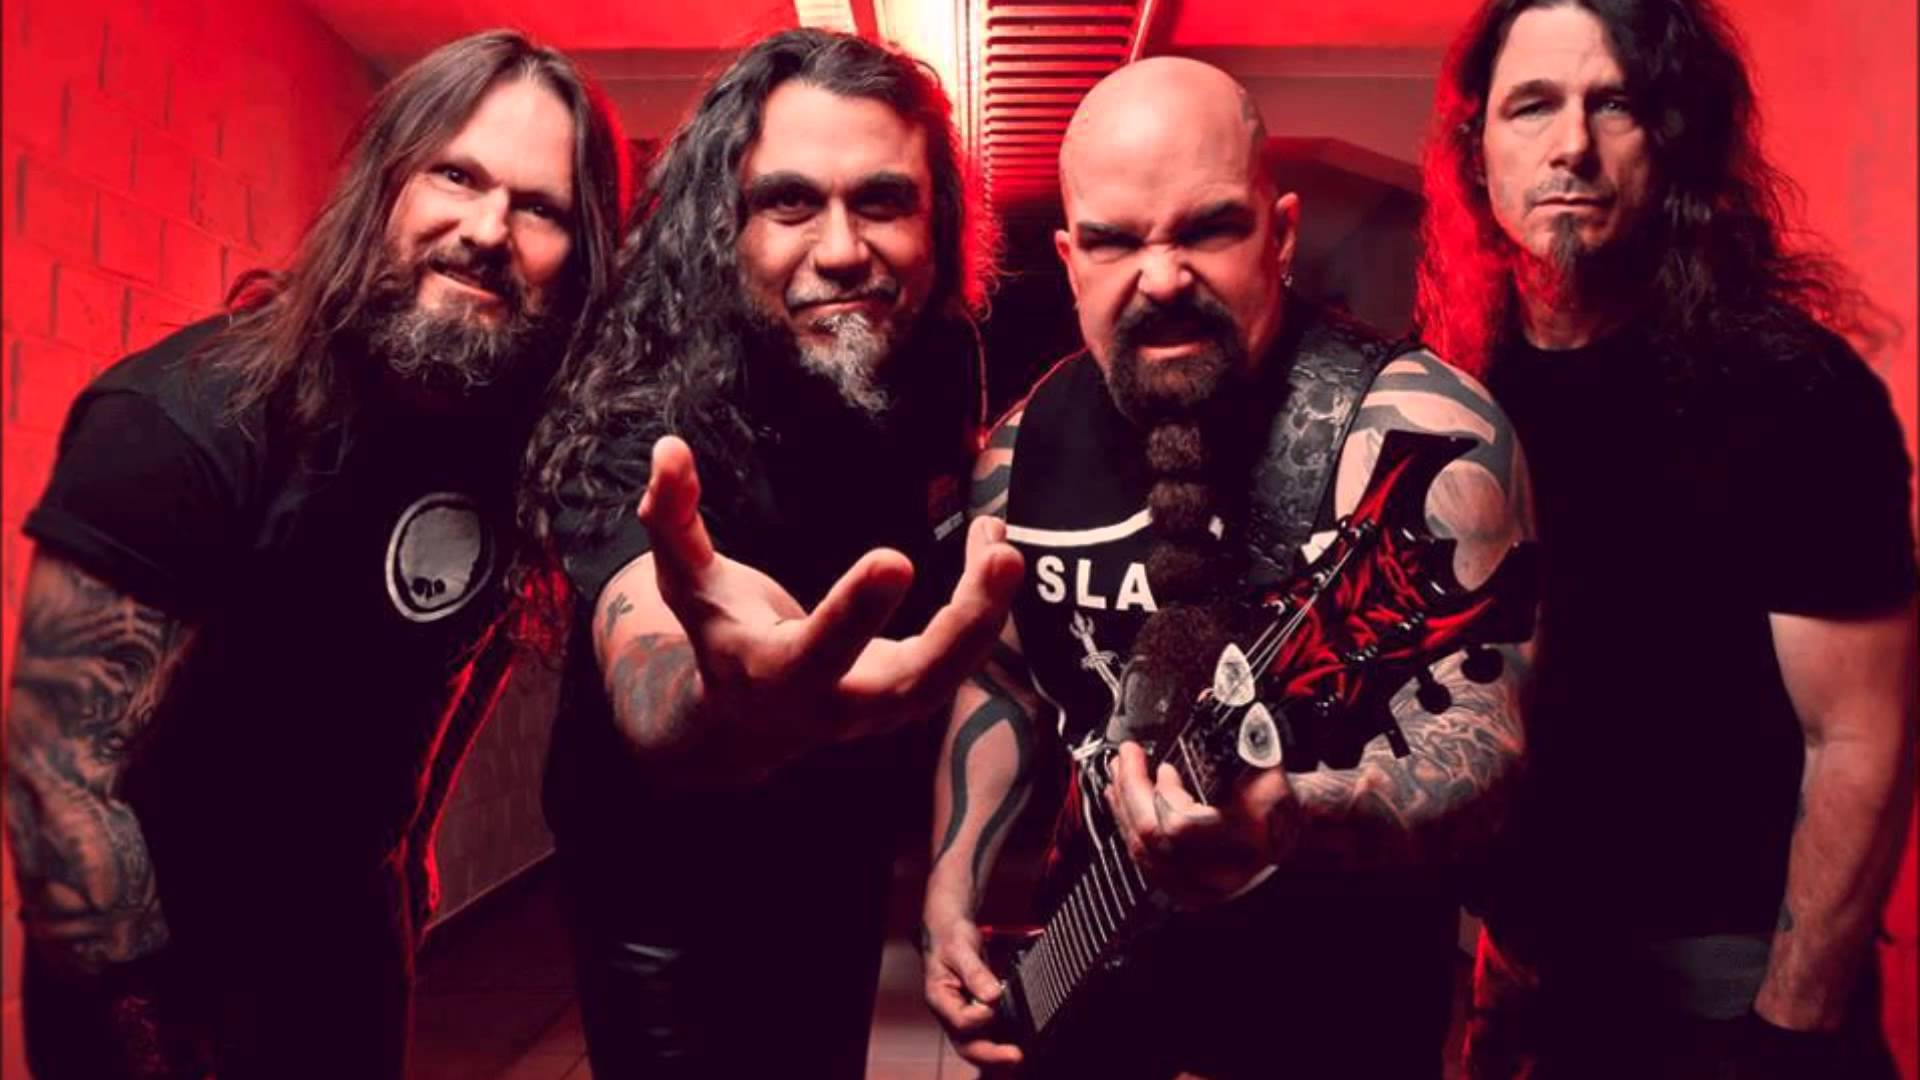 Slayer Backgrounds, Compatible - PC, Mobile, Gadgets| 1920x1080 px